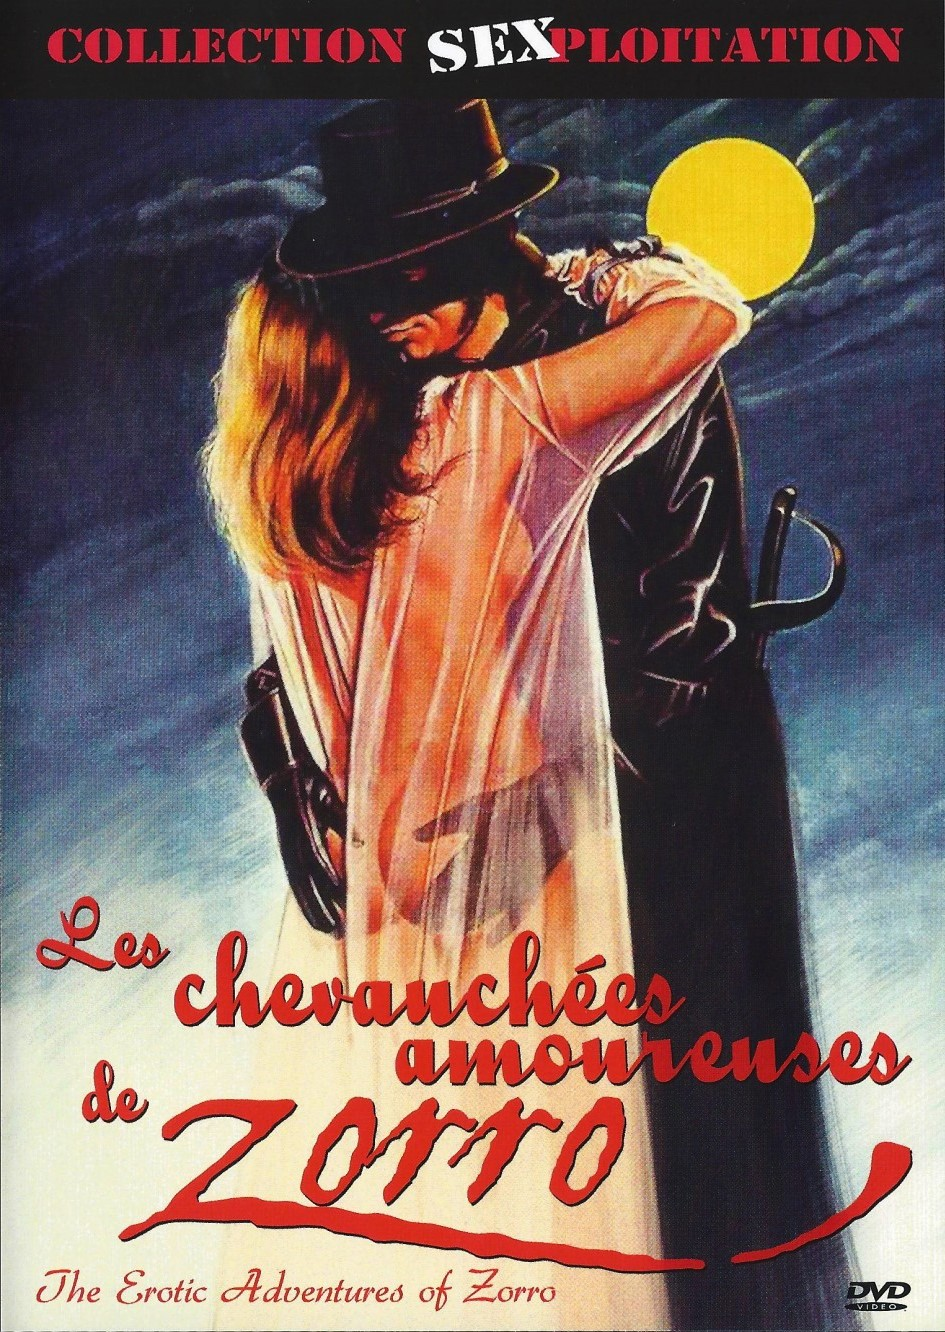 Erotic adventures of zorro wall poster by unknown